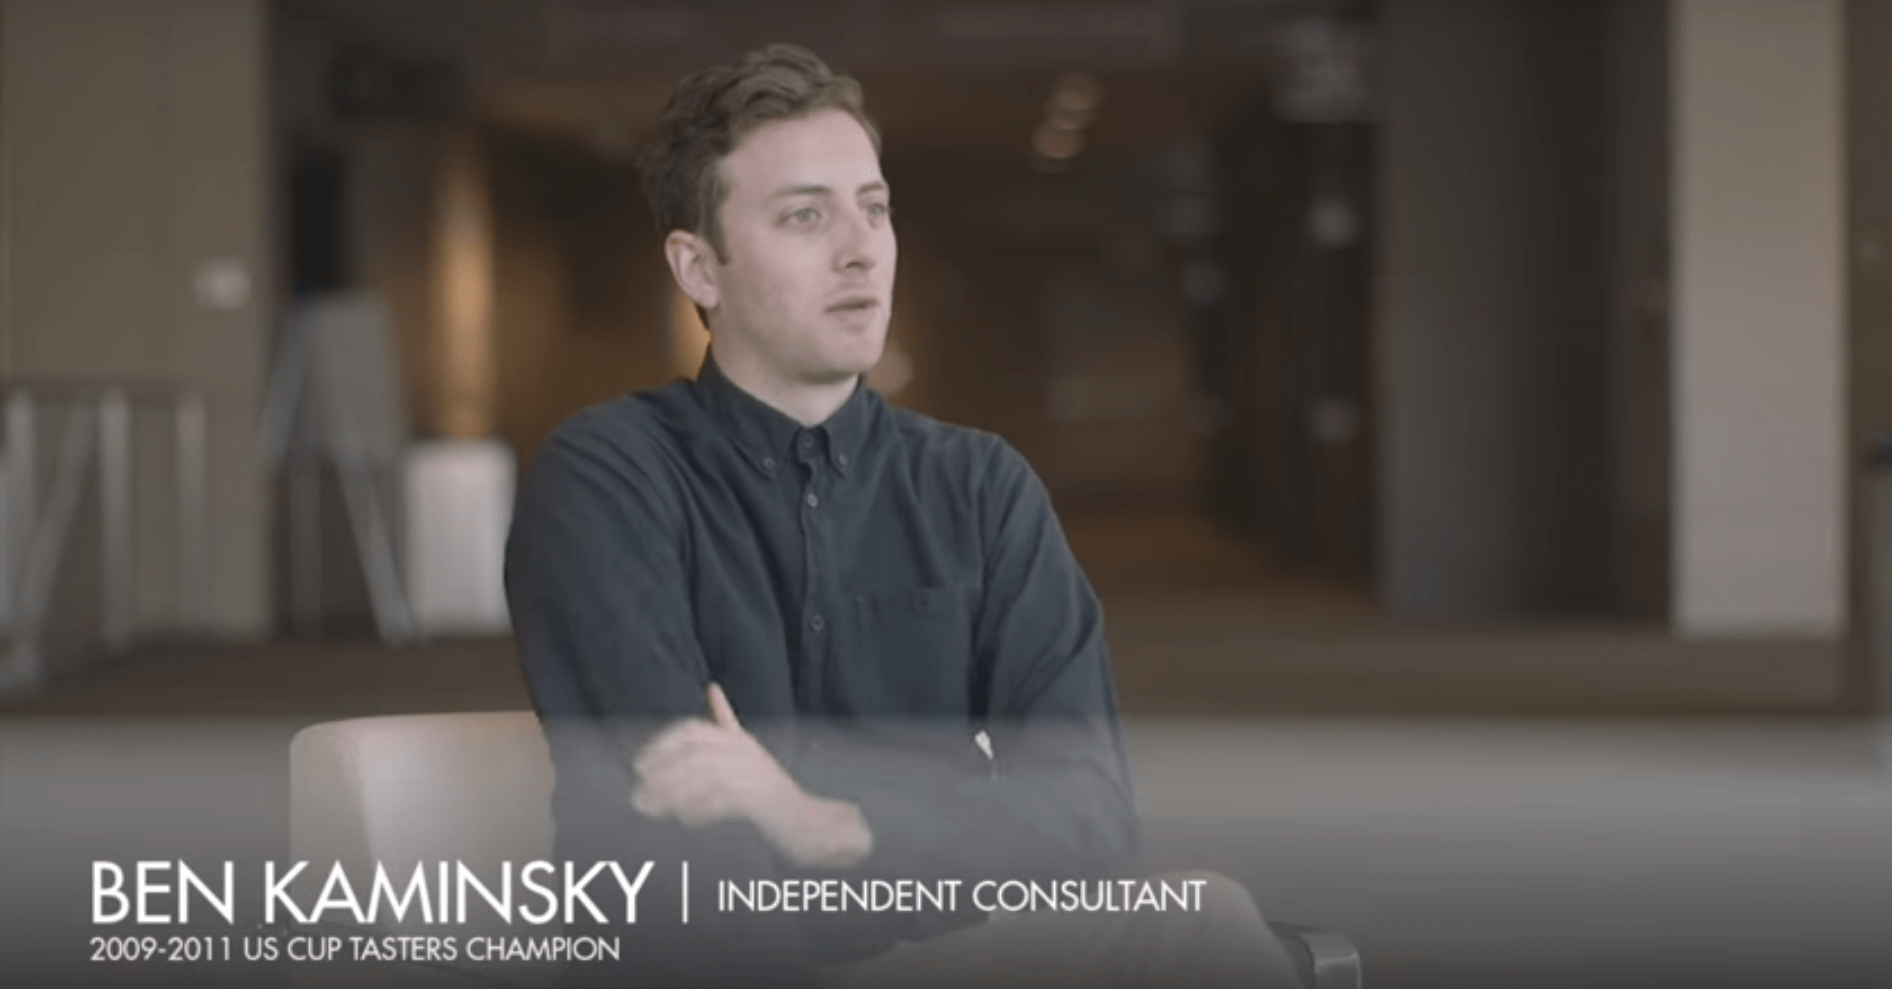 5 Things To Learn From Ben Kaminsky About WBC